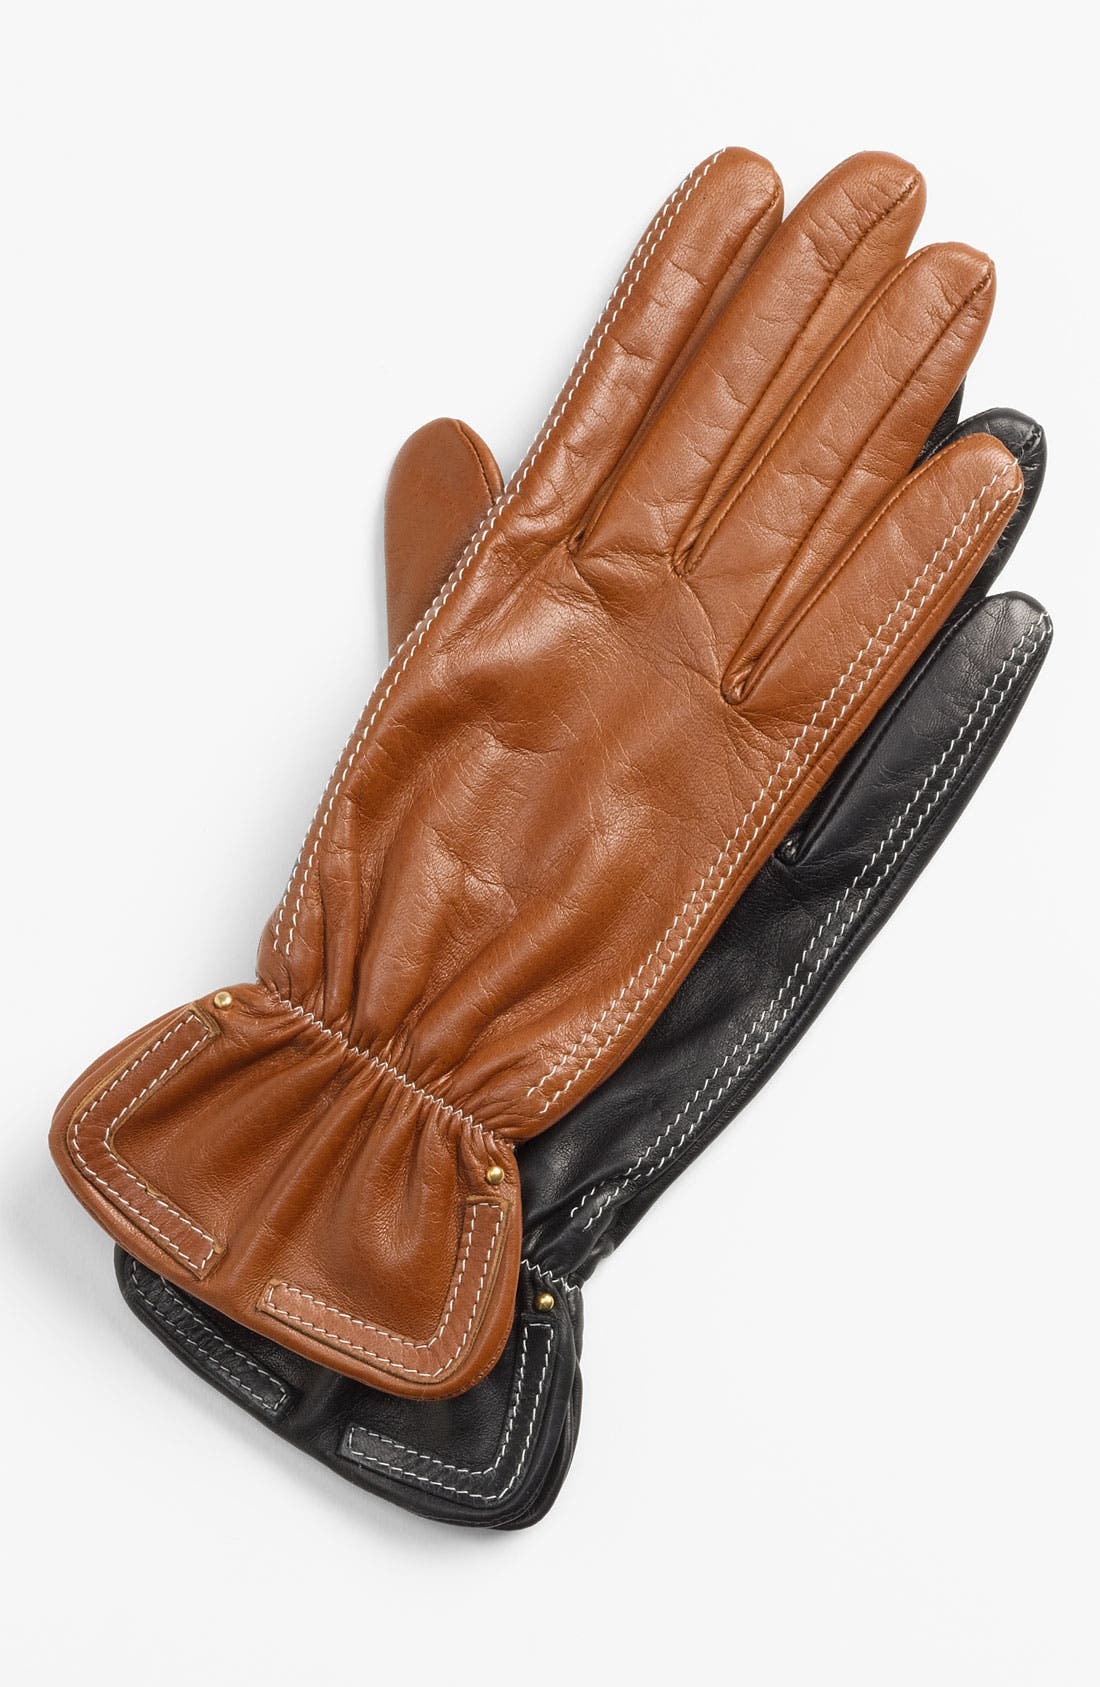 Main Image - Nordstrom Contrast Stitch Glacé Leather Gloves